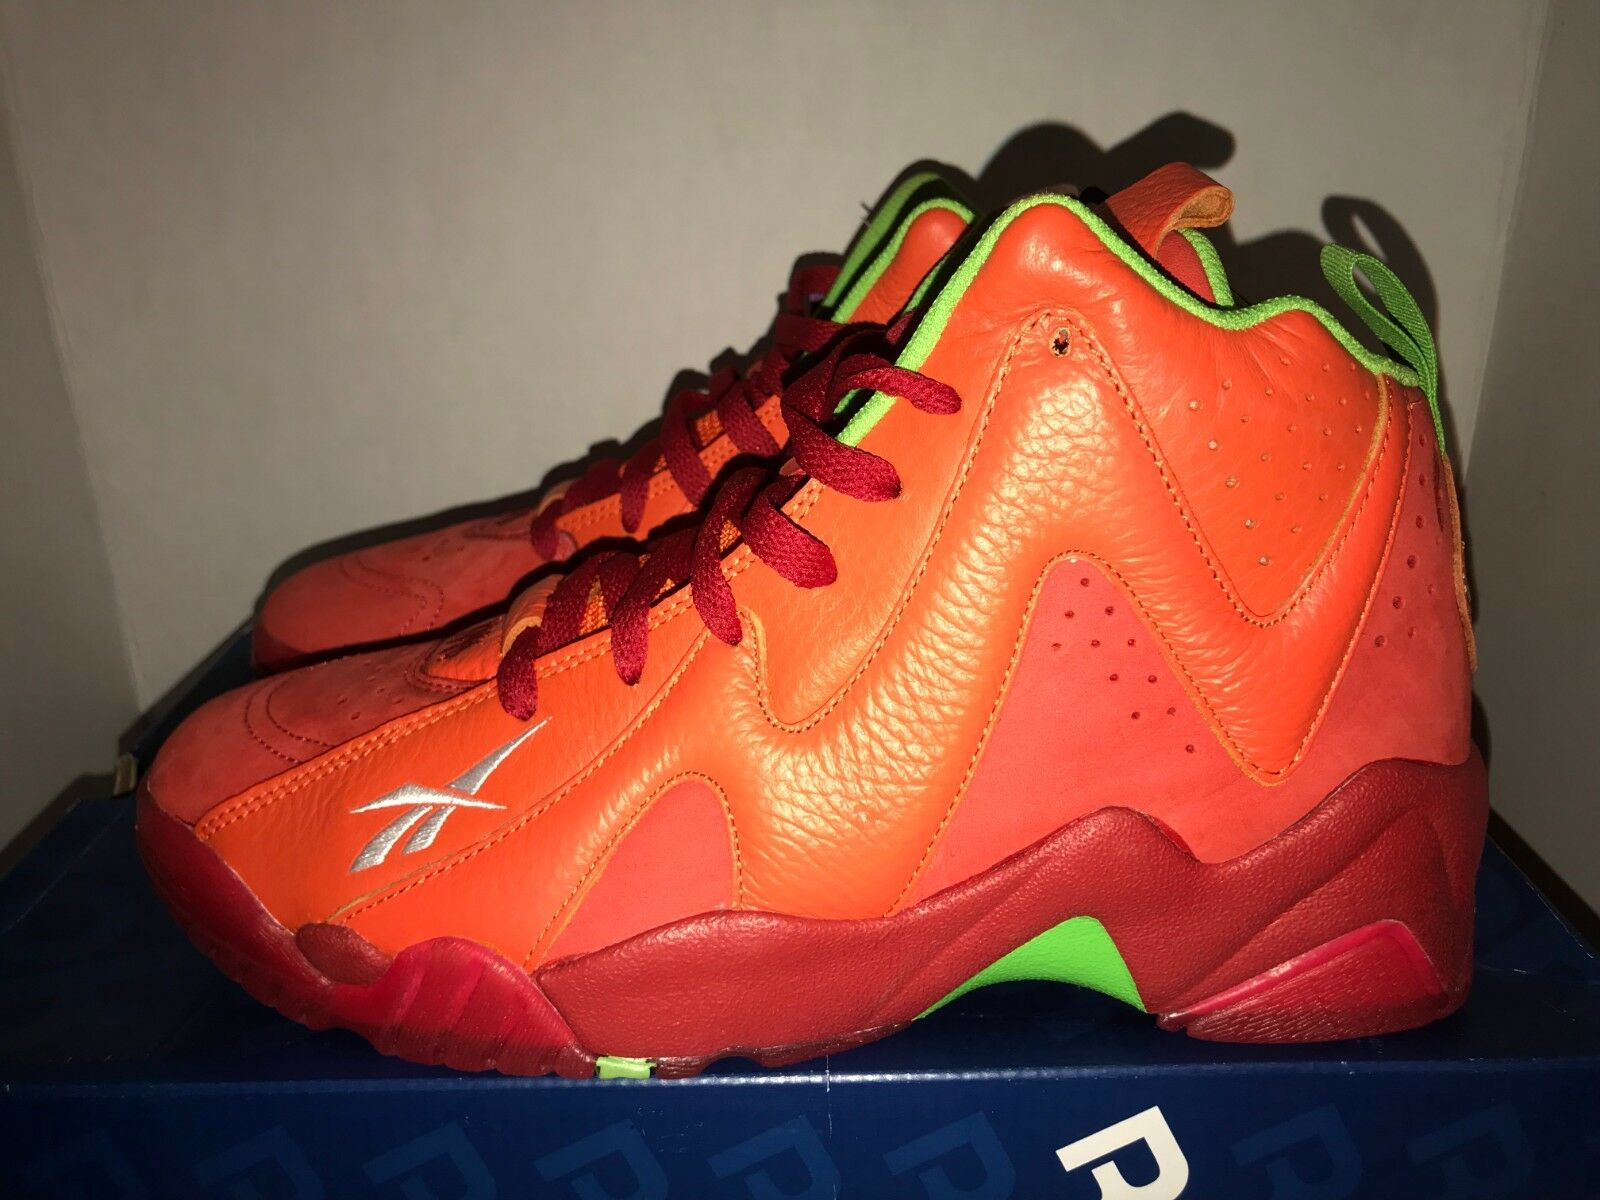 Reebok Kamikaze II Packer Shoes Chili Pepper